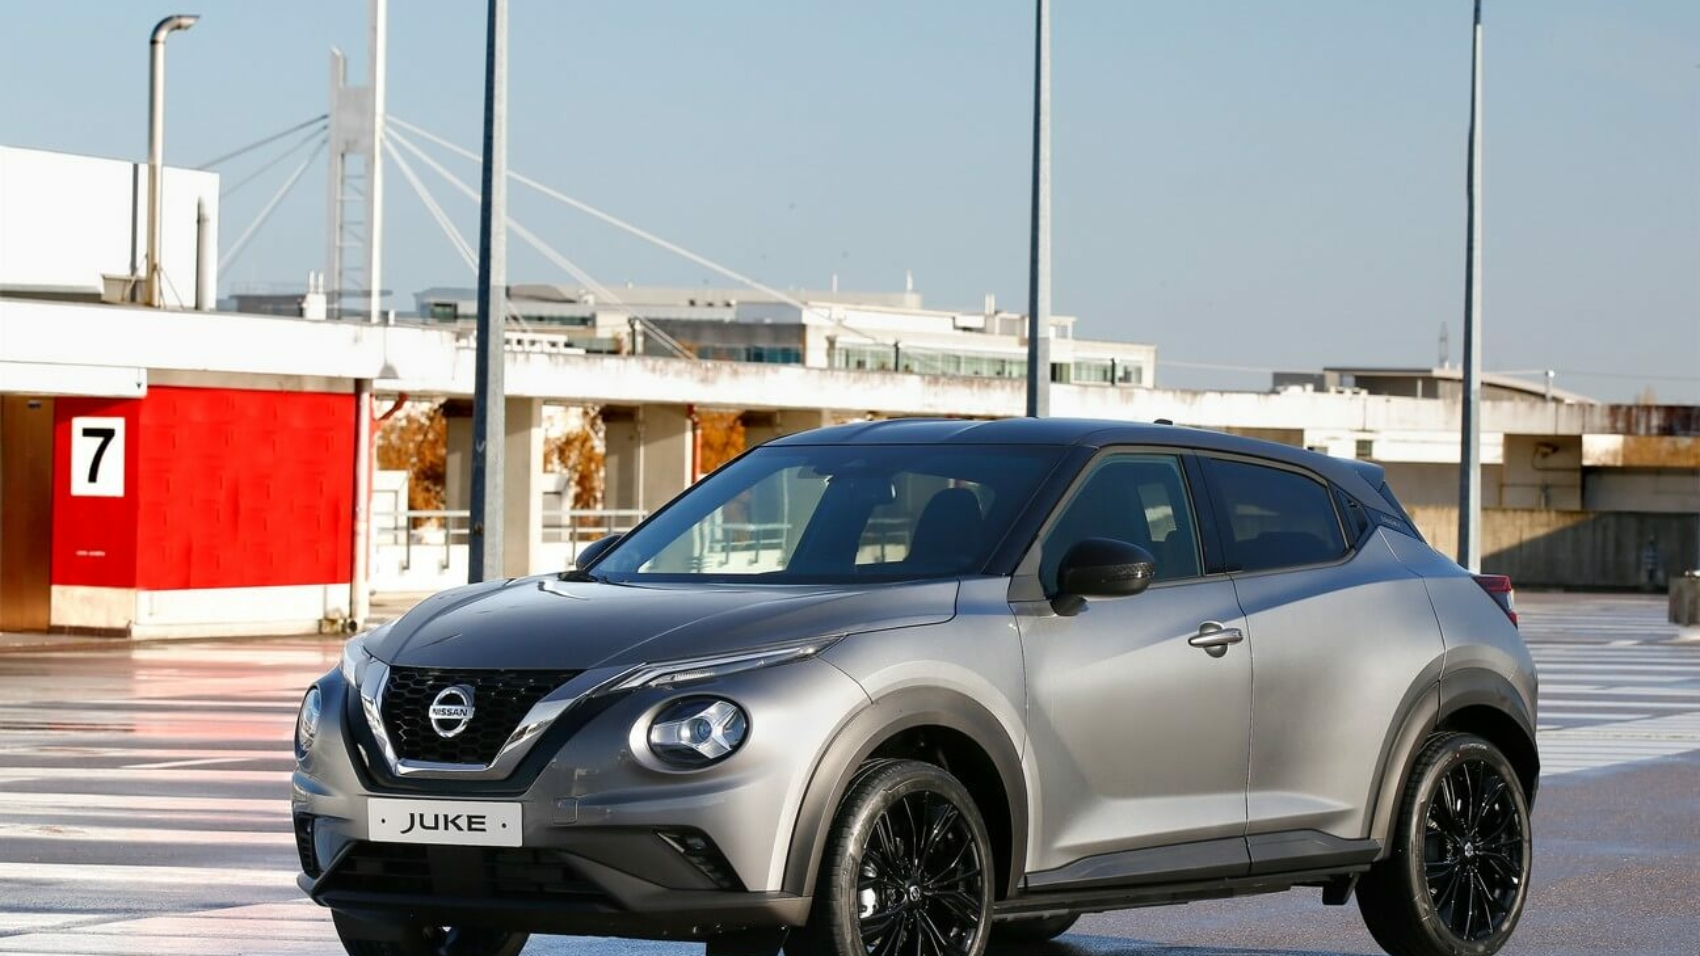 2021 Nissan Juke Enigma special edition